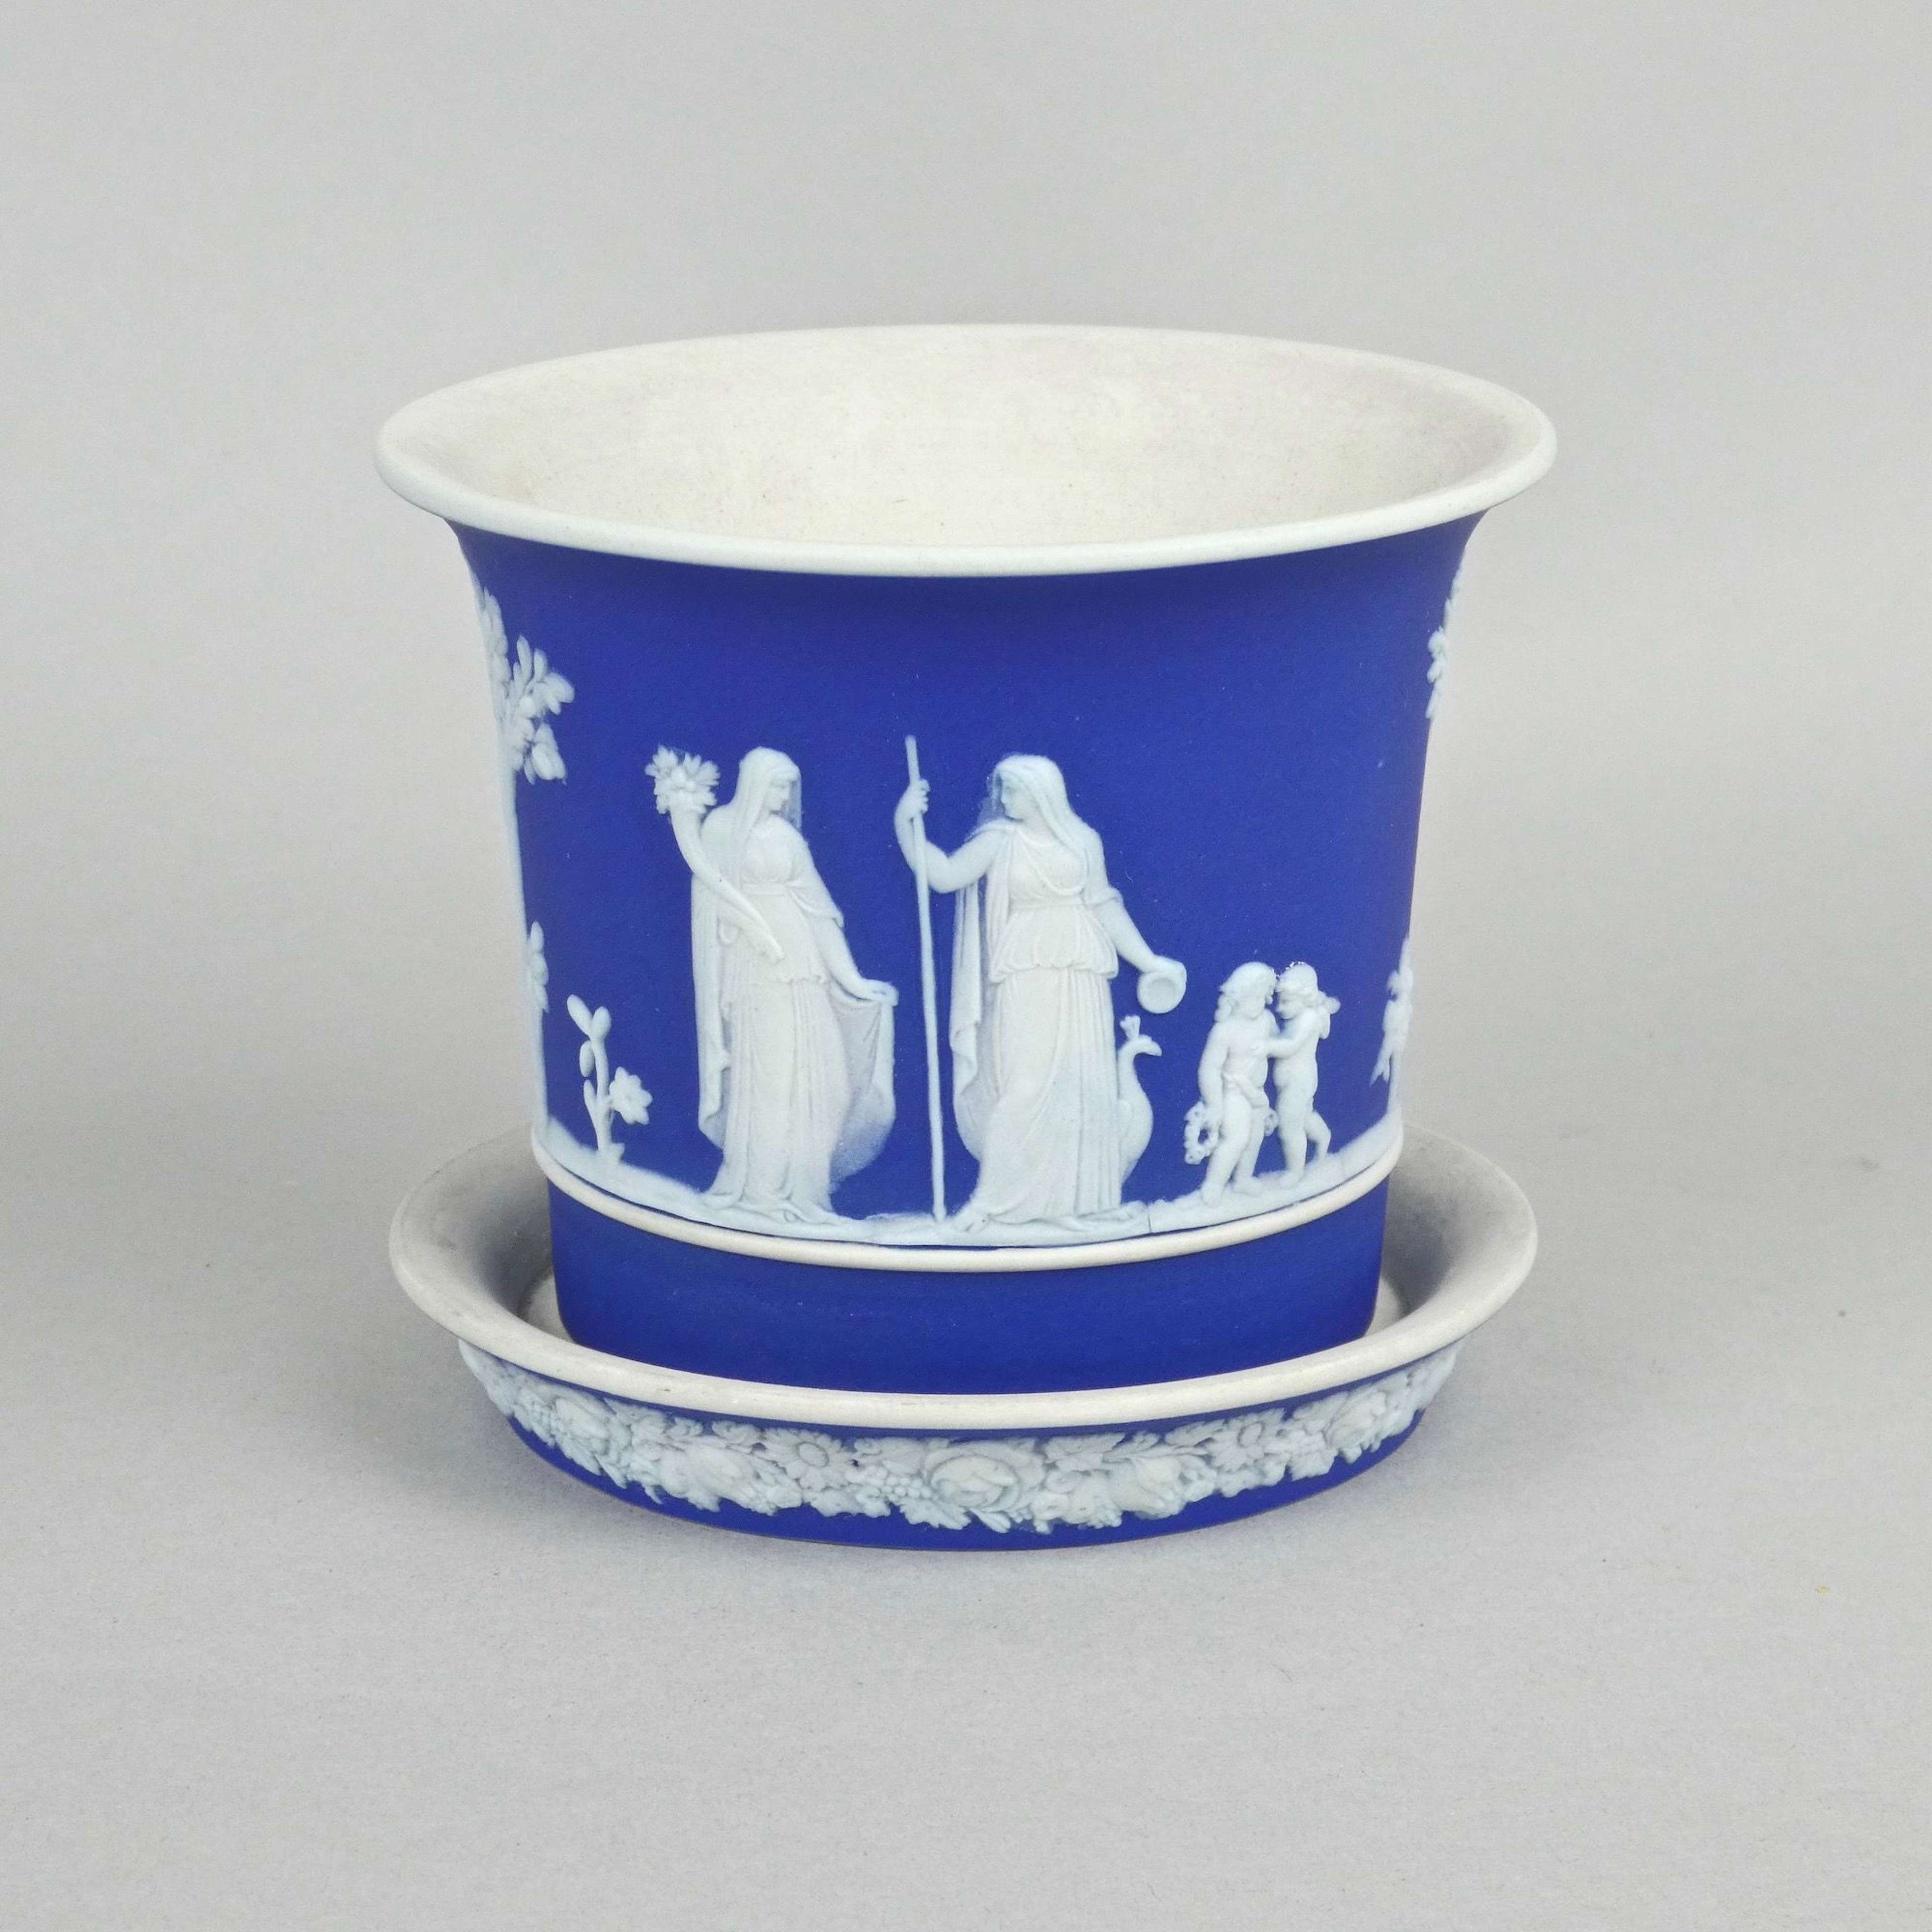 Small, Wedgwood cache pot and stand